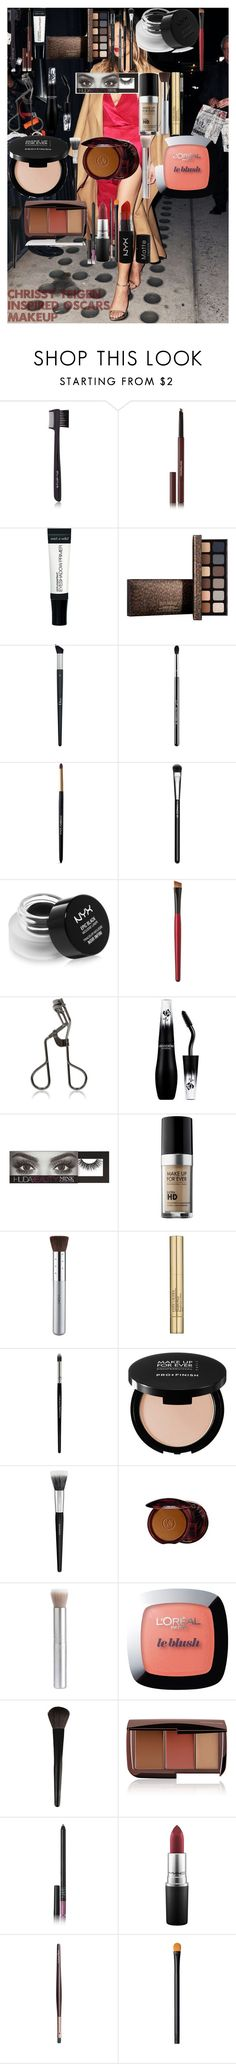 """CHRISSY TEIGEN Inspired Oscars Makeup"" by oroartye-1 on Polyvore featuring beauty, shu uemura, Hourglass Cosmetics, Christian Dior, Sigma, Dolce&Gabbana, MAC Cosmetics, NYX, Kent and Tweezerman"